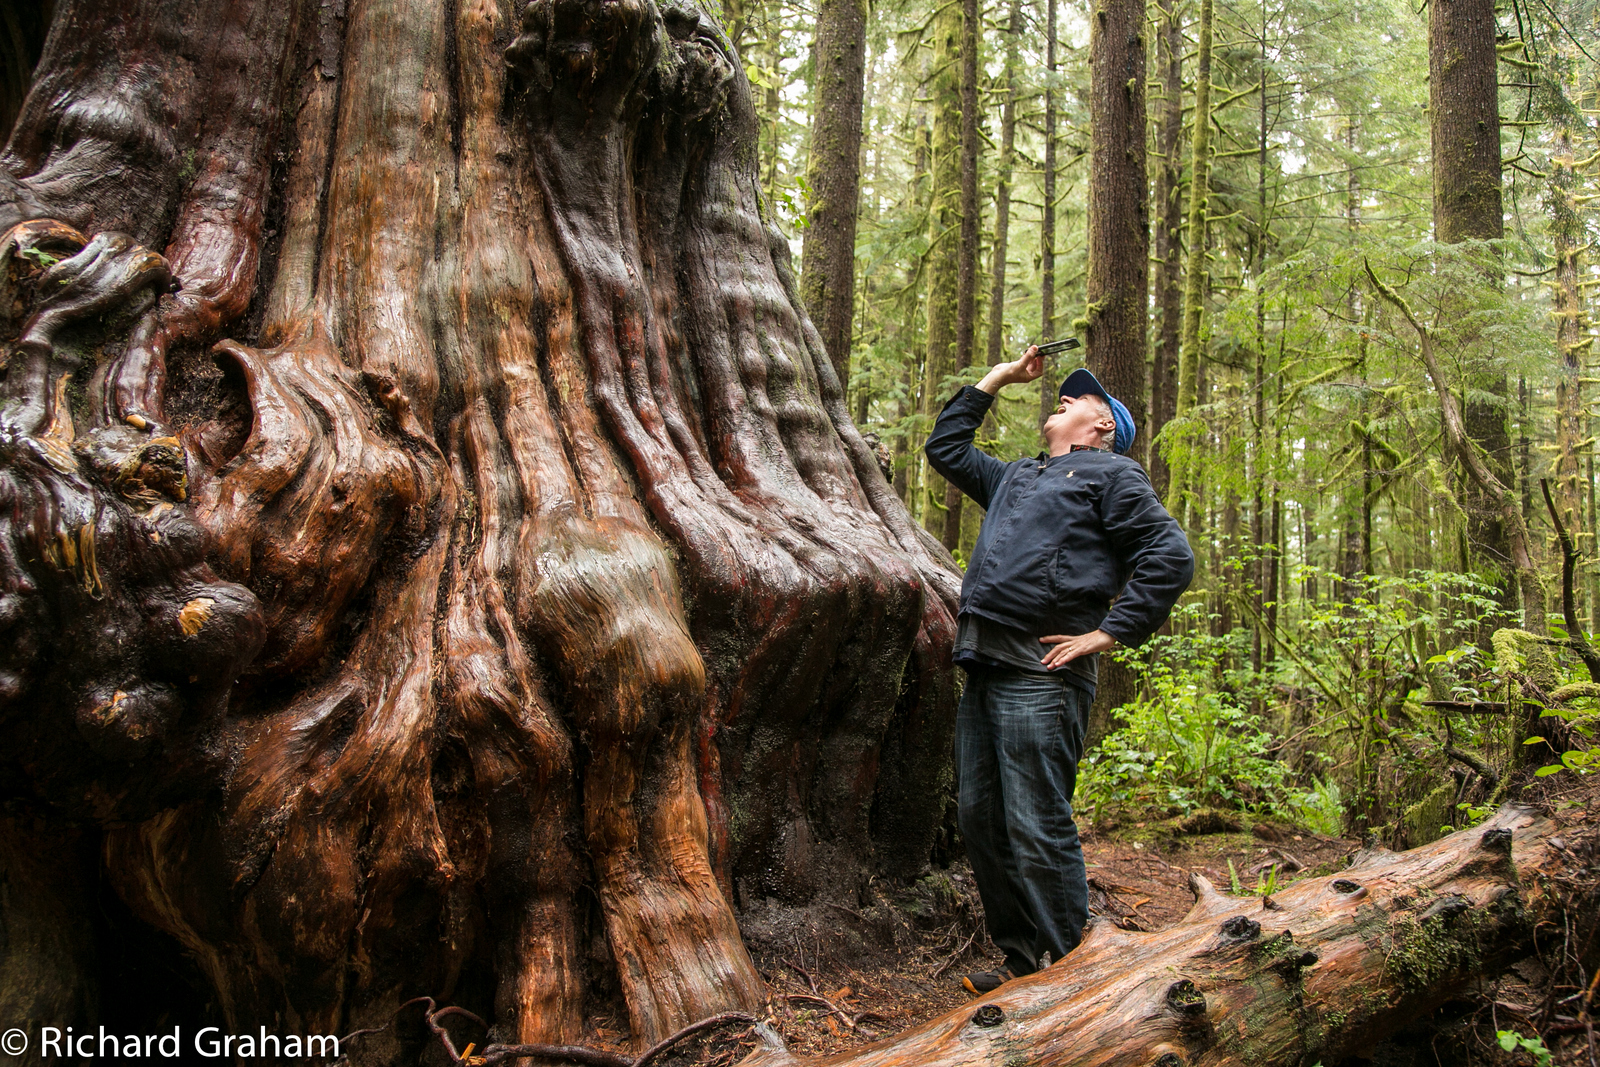 That's me checking out a massive tree in the Avatar Forest of B.C. - PHOTO BY RICK GRAHAM FOR BRITISH COLUMBIA TOURISM